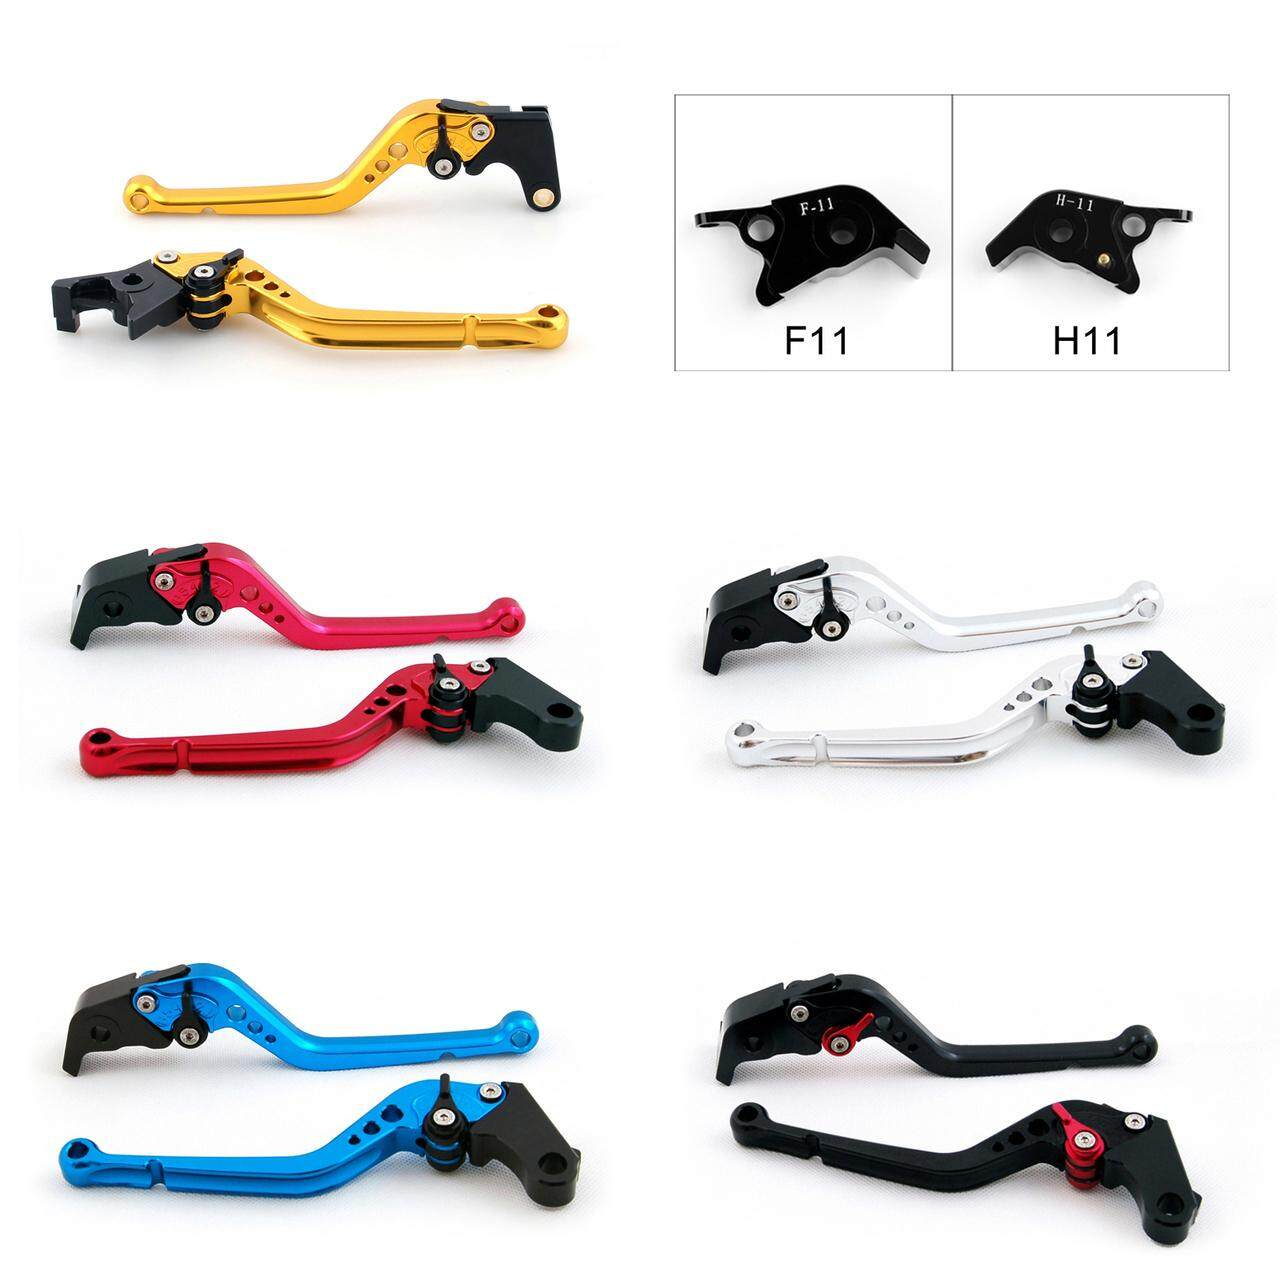 Standard Staff Length Adjustable Brake Clutch Levers Ducati STREETFIGHTER 848 2012-2015